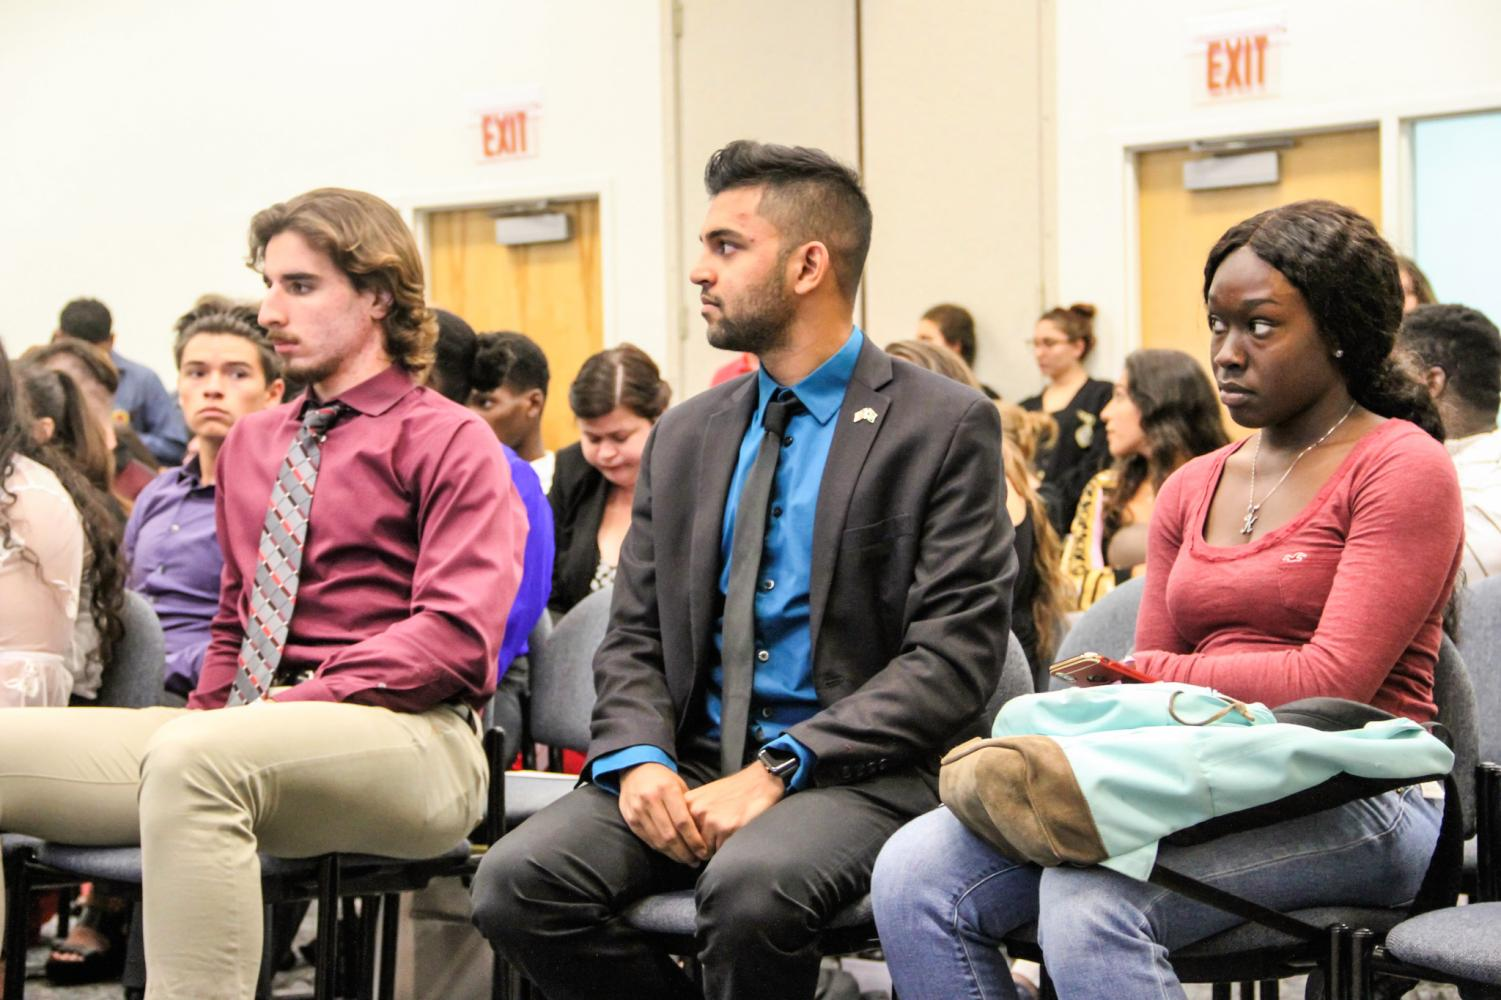 Sayd Hussain (middle) sits next to Boca campus House Rep. Louis Akra during Gov. Luke Turner's impeachment hearing on Nov. 16. Photo by Hope Dean